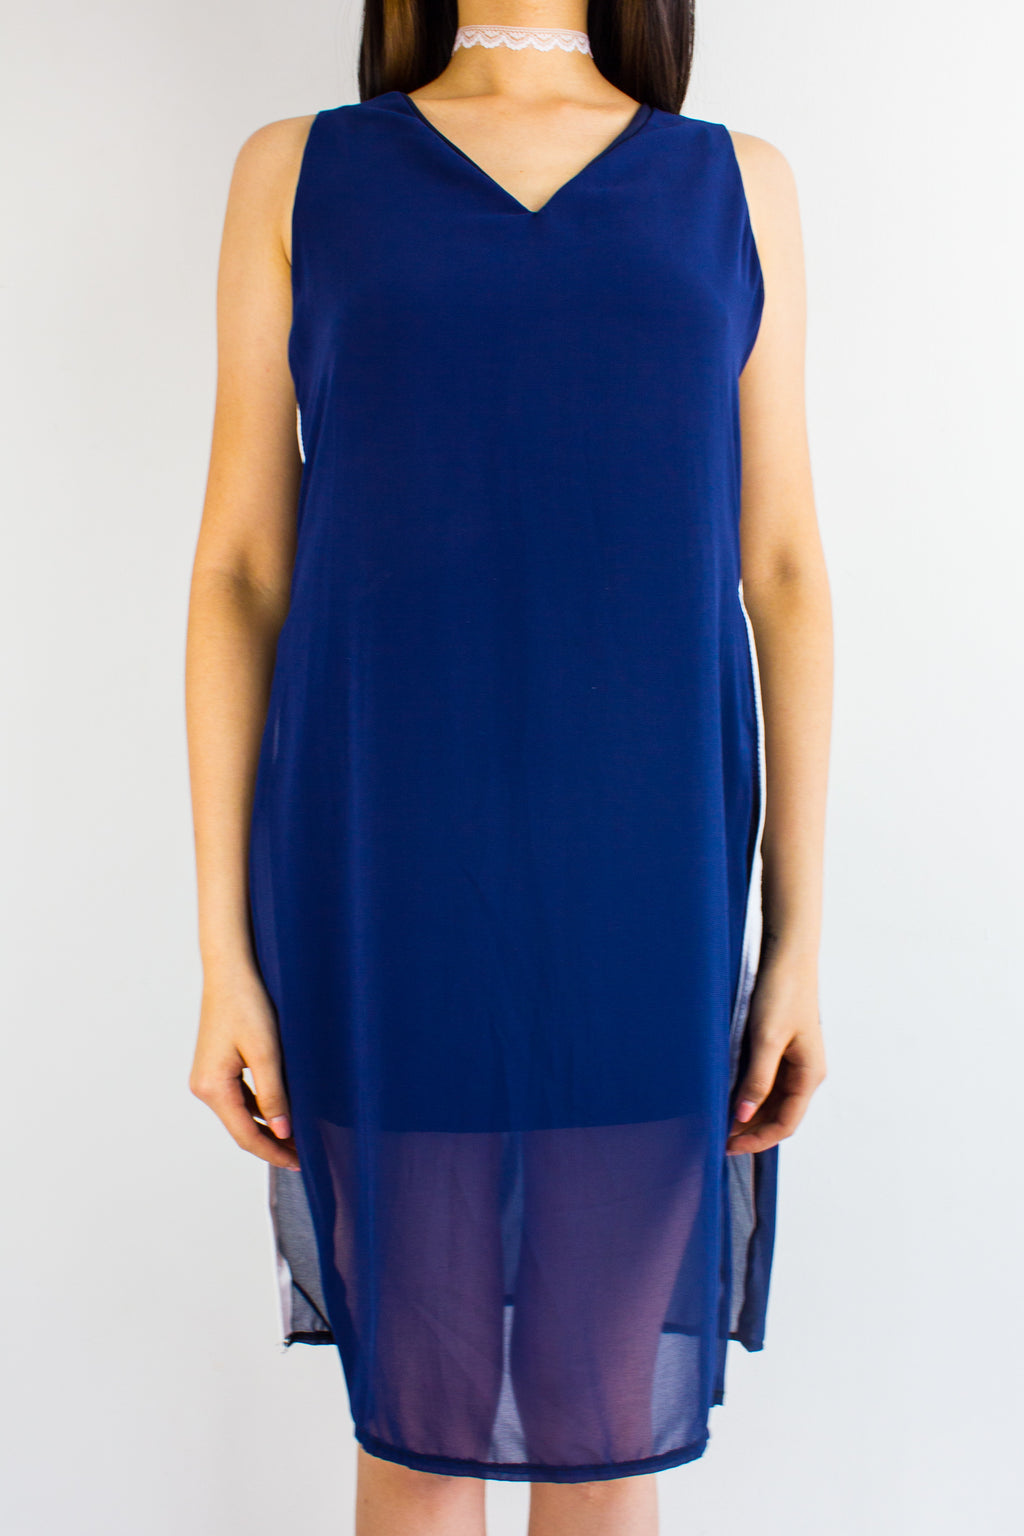 Split Ways Chiffon Dress in Navy - DRESSES - Peep Boutique